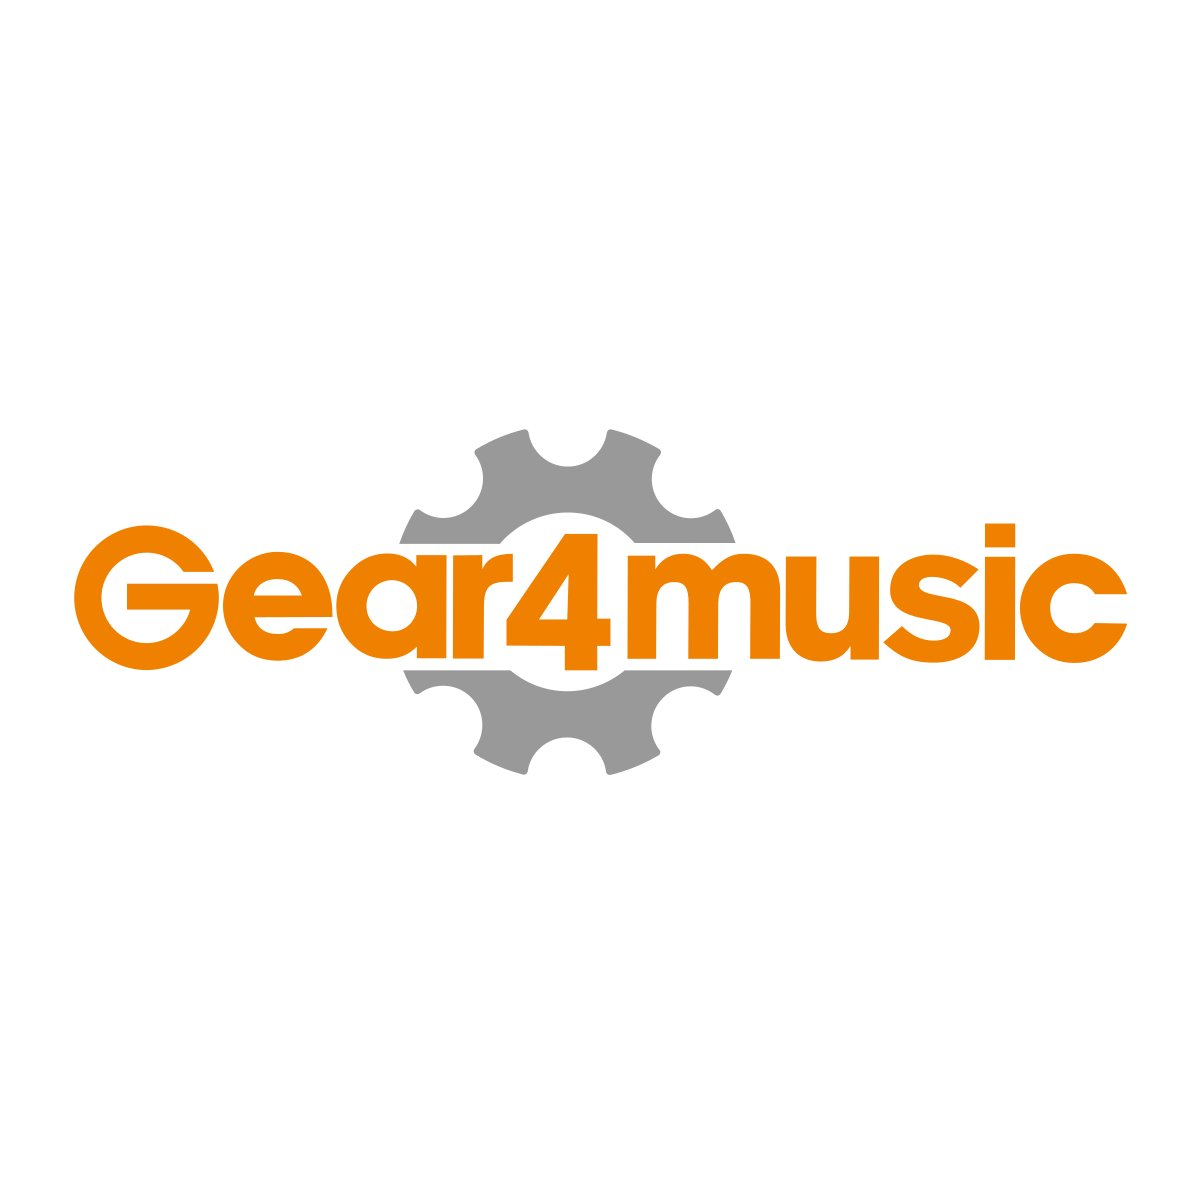 LA guitare électrique par Gear4music, White - B-Stock